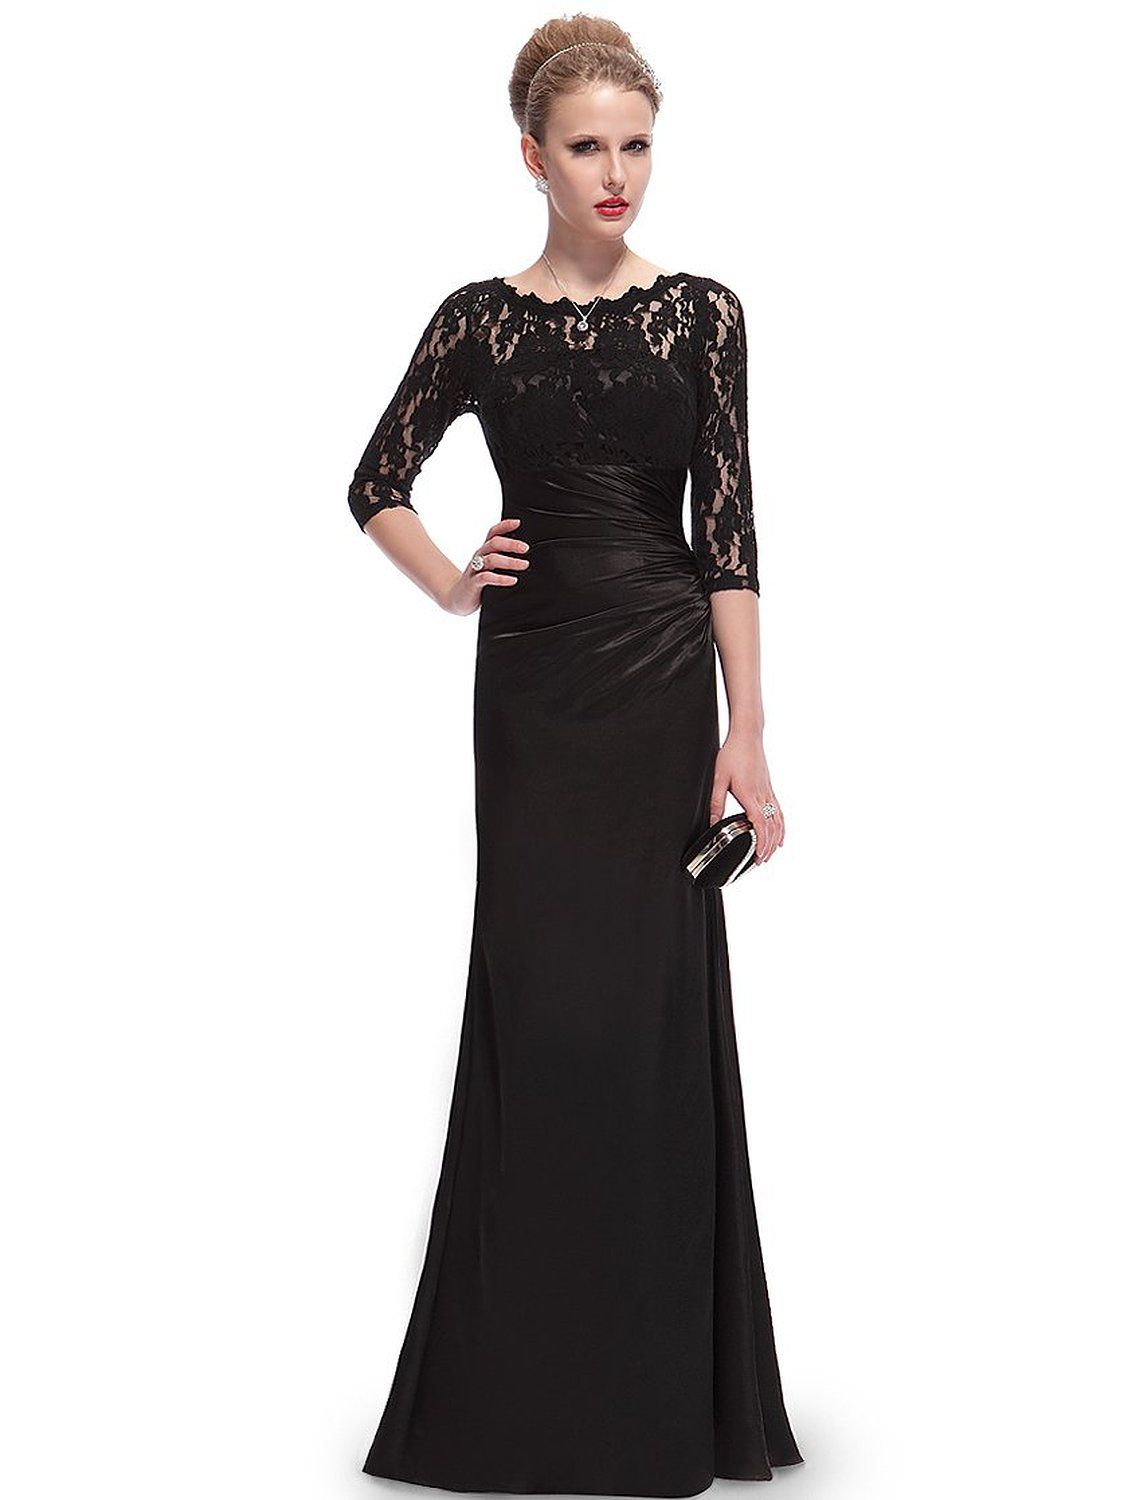 Ever Pretty Elegant Lace Long Sleeve Formal Floor Length Evening Dress  09882 at Amazon Women s Clothing store  Lace Prom Dress Long fd491c96f